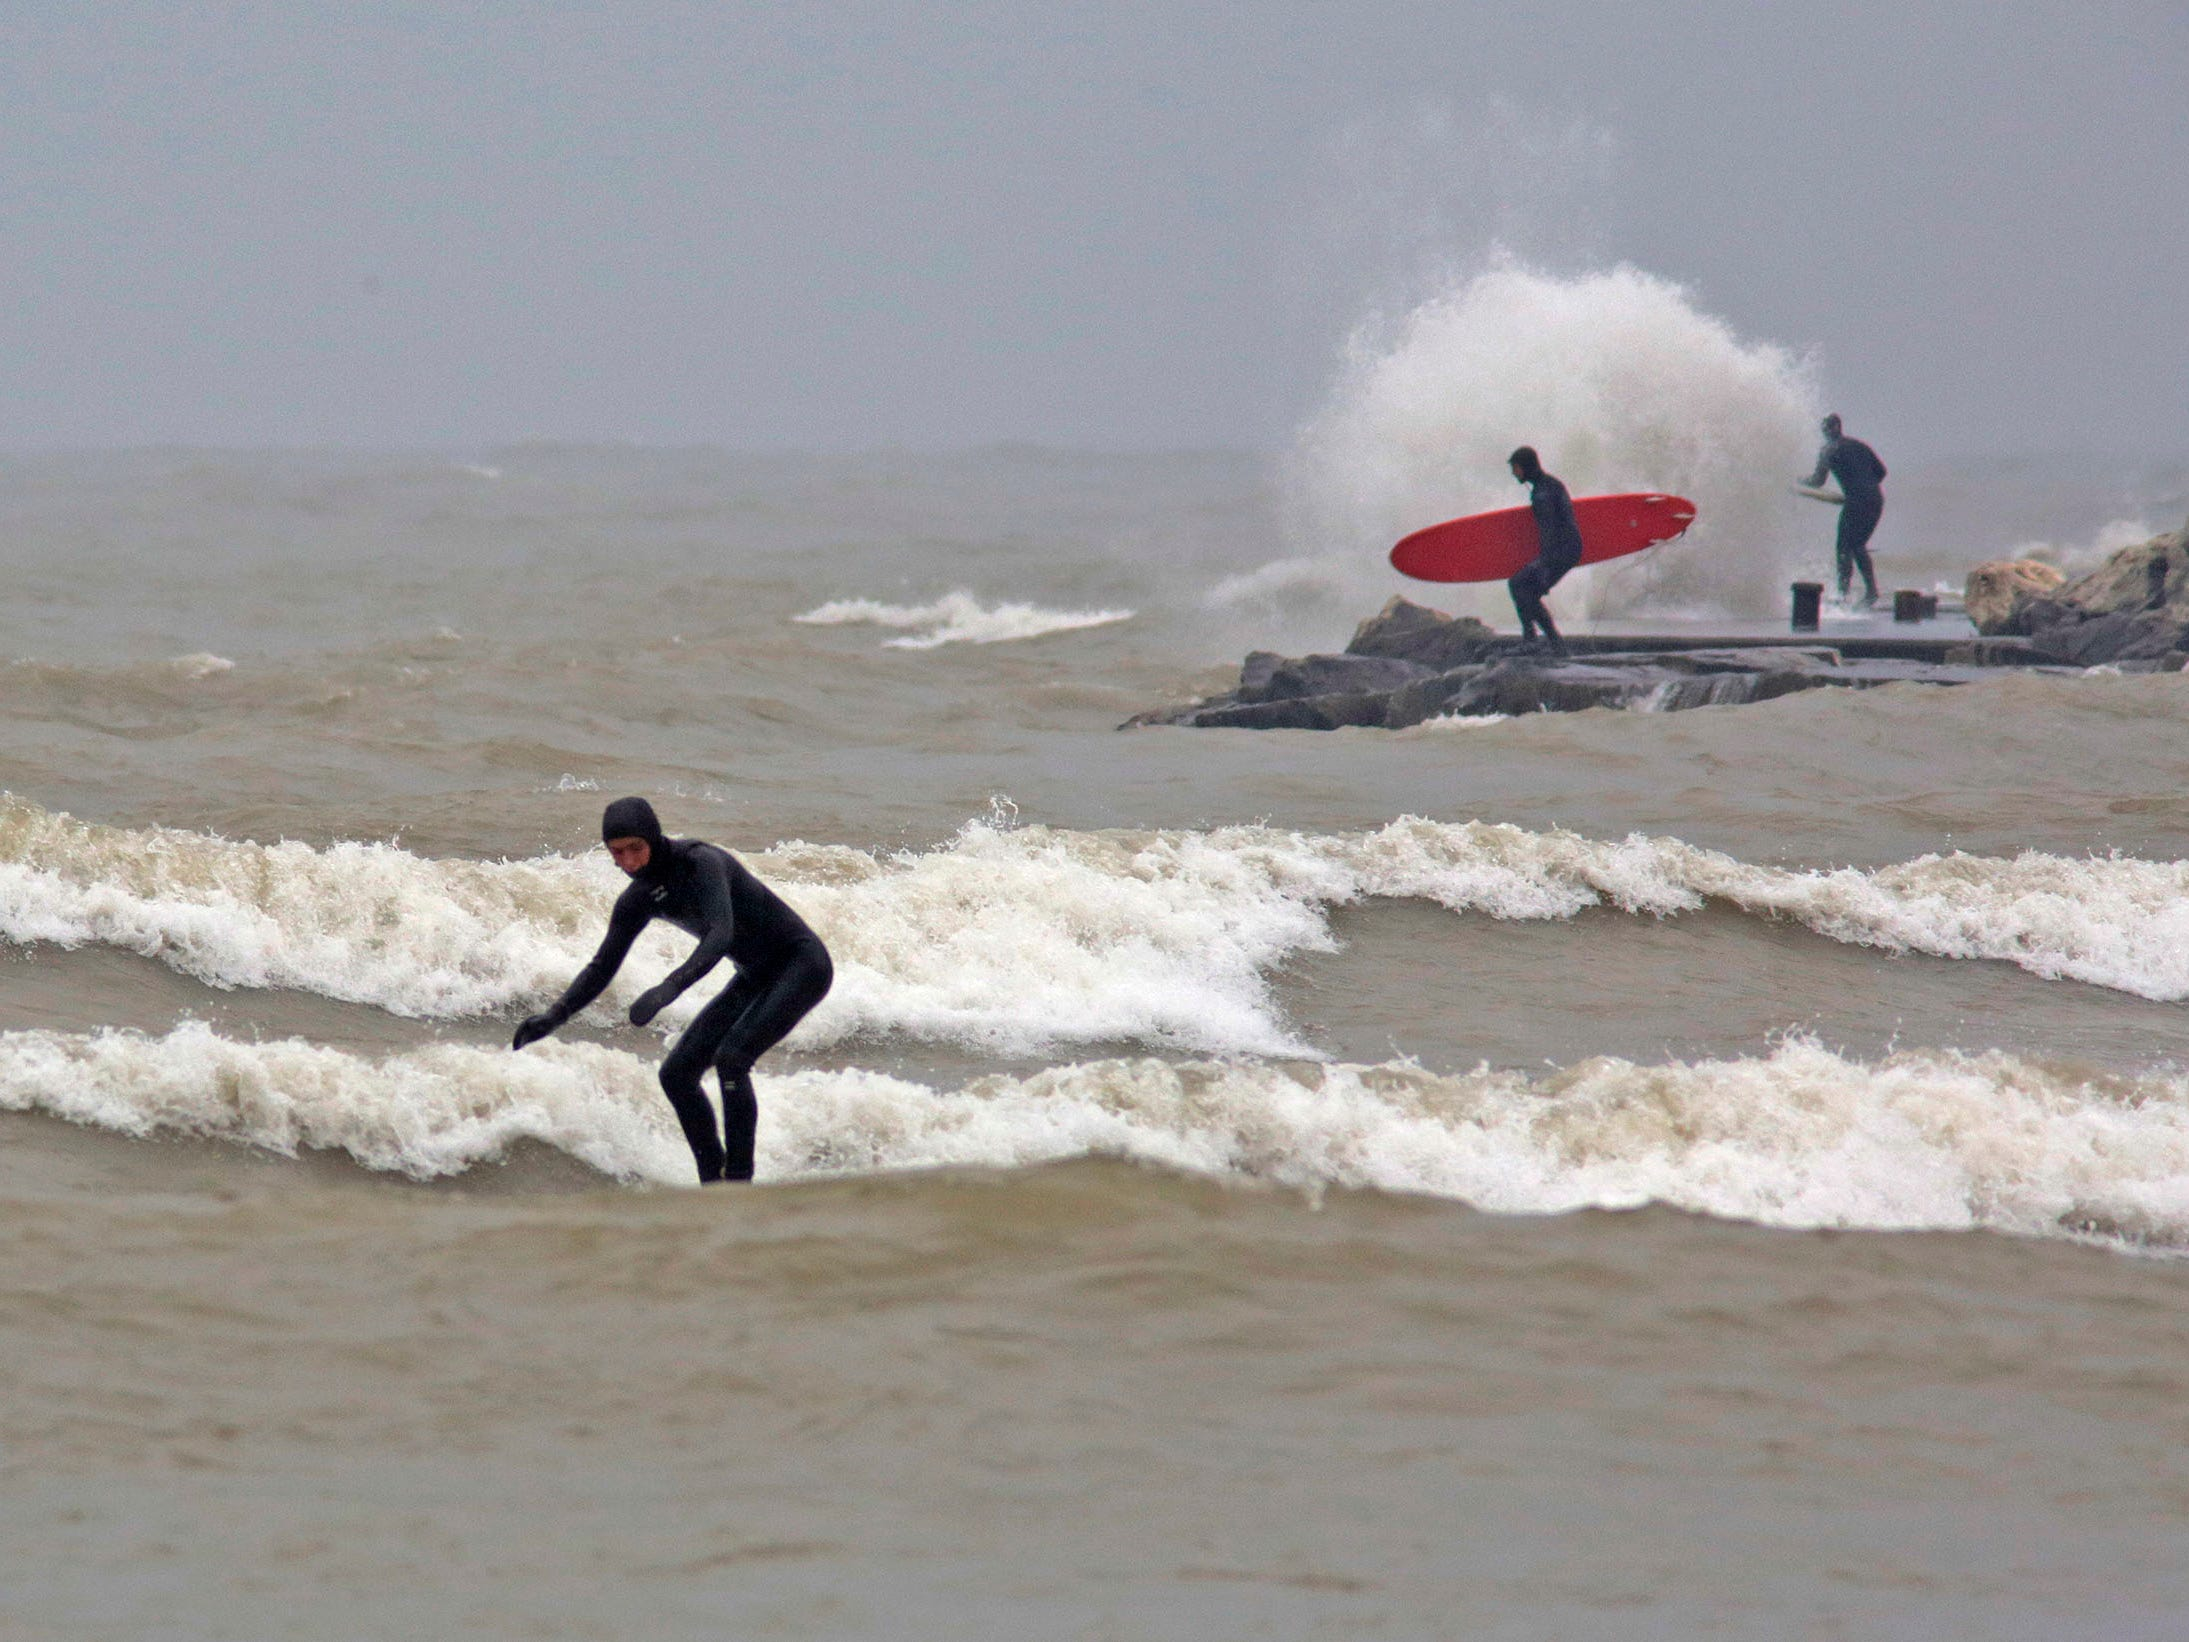 Surfers take on waves at Deland Park, Monday, January 7, 2019, in Sheboygan, Wis. Westerly winds of 15-25 knots were expected to be in the 3 to 8 foot range with possibilities as high as 10 feet.